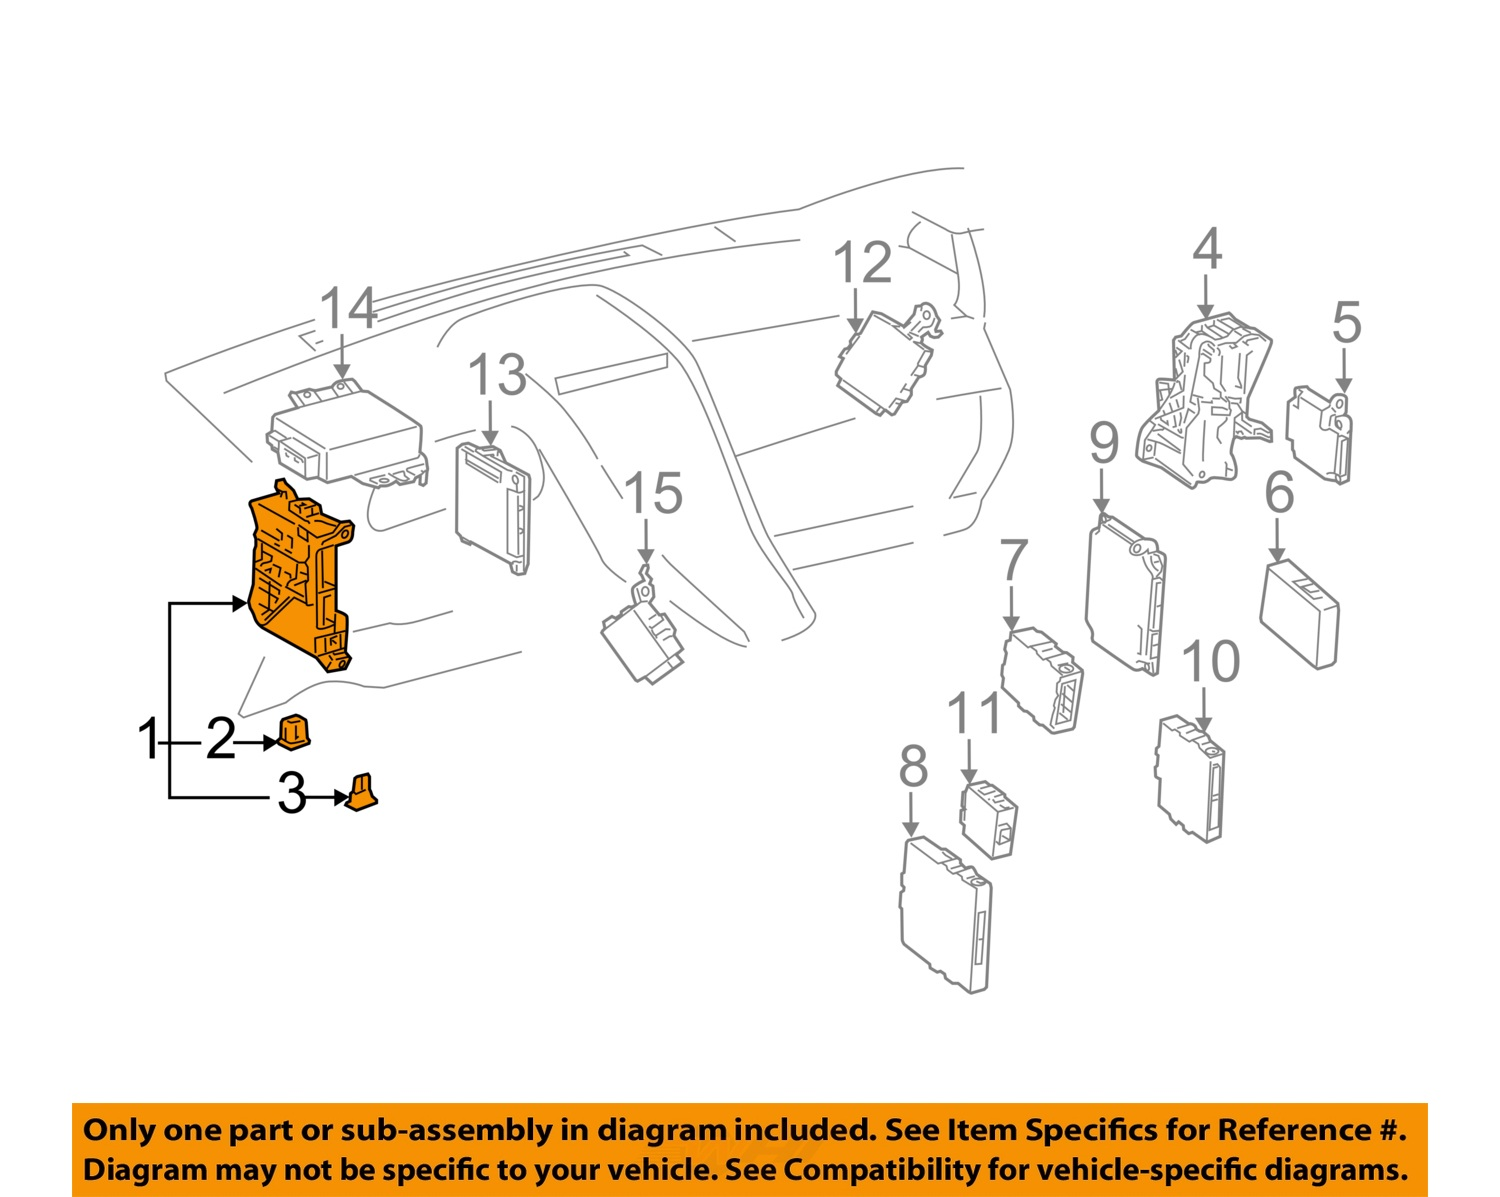 Nissan Forklift Fuse Box Location Wiring Diagrams Schematics Marvelous Toyota 5fbe15 Contemporary Best On 2008 Sentra Titan